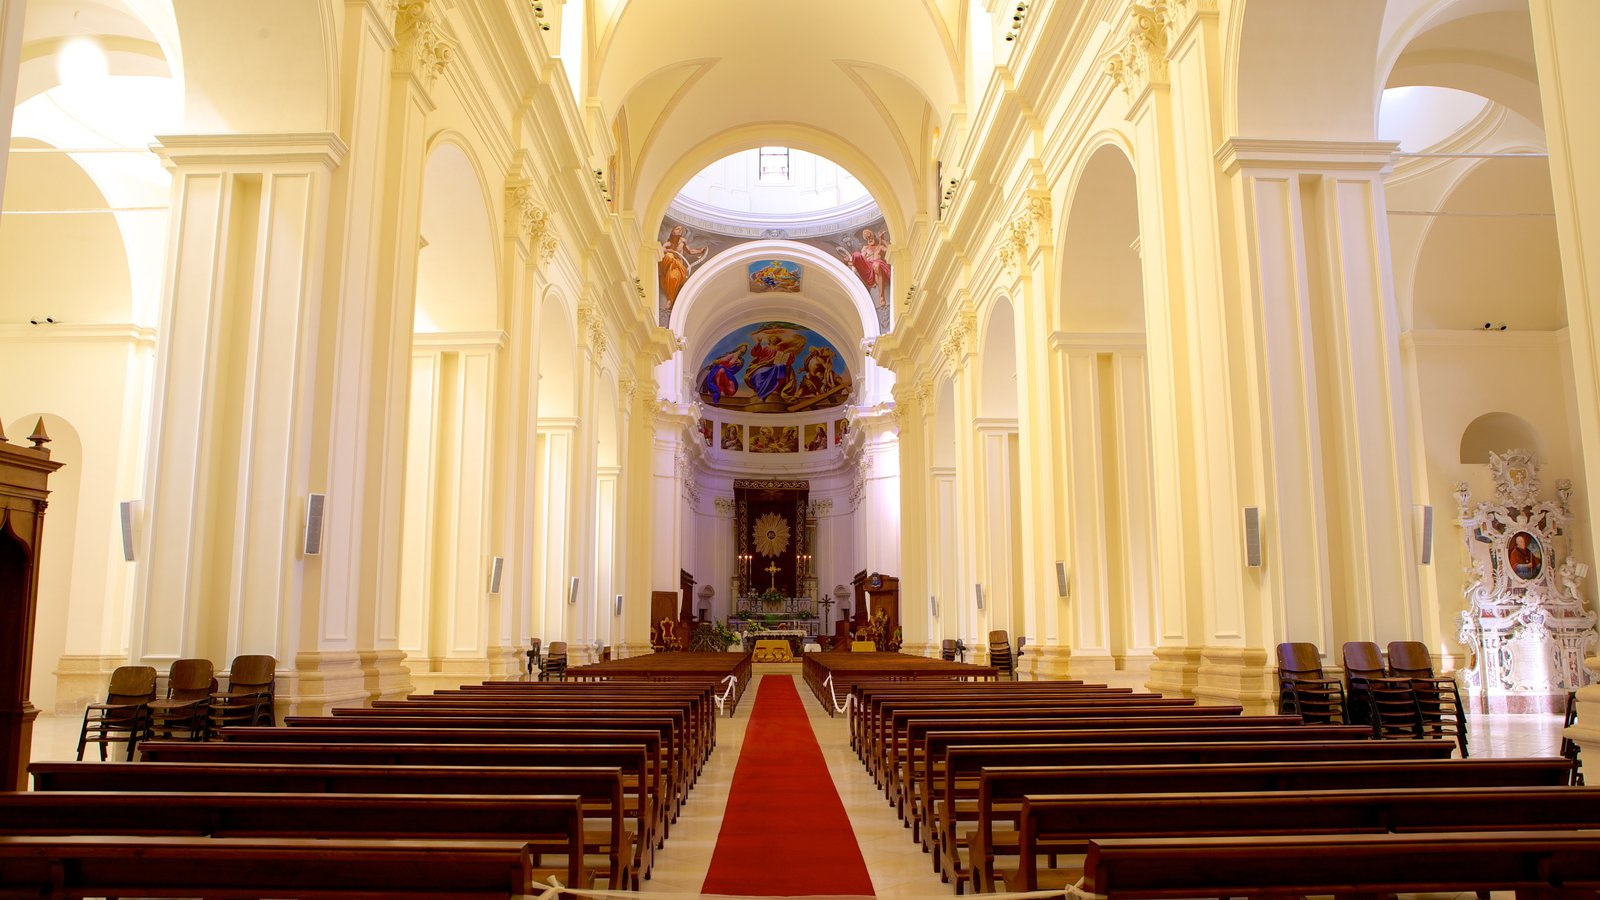 Cathedral of Noto featuring a church or cathedral, religious aspects and interior views